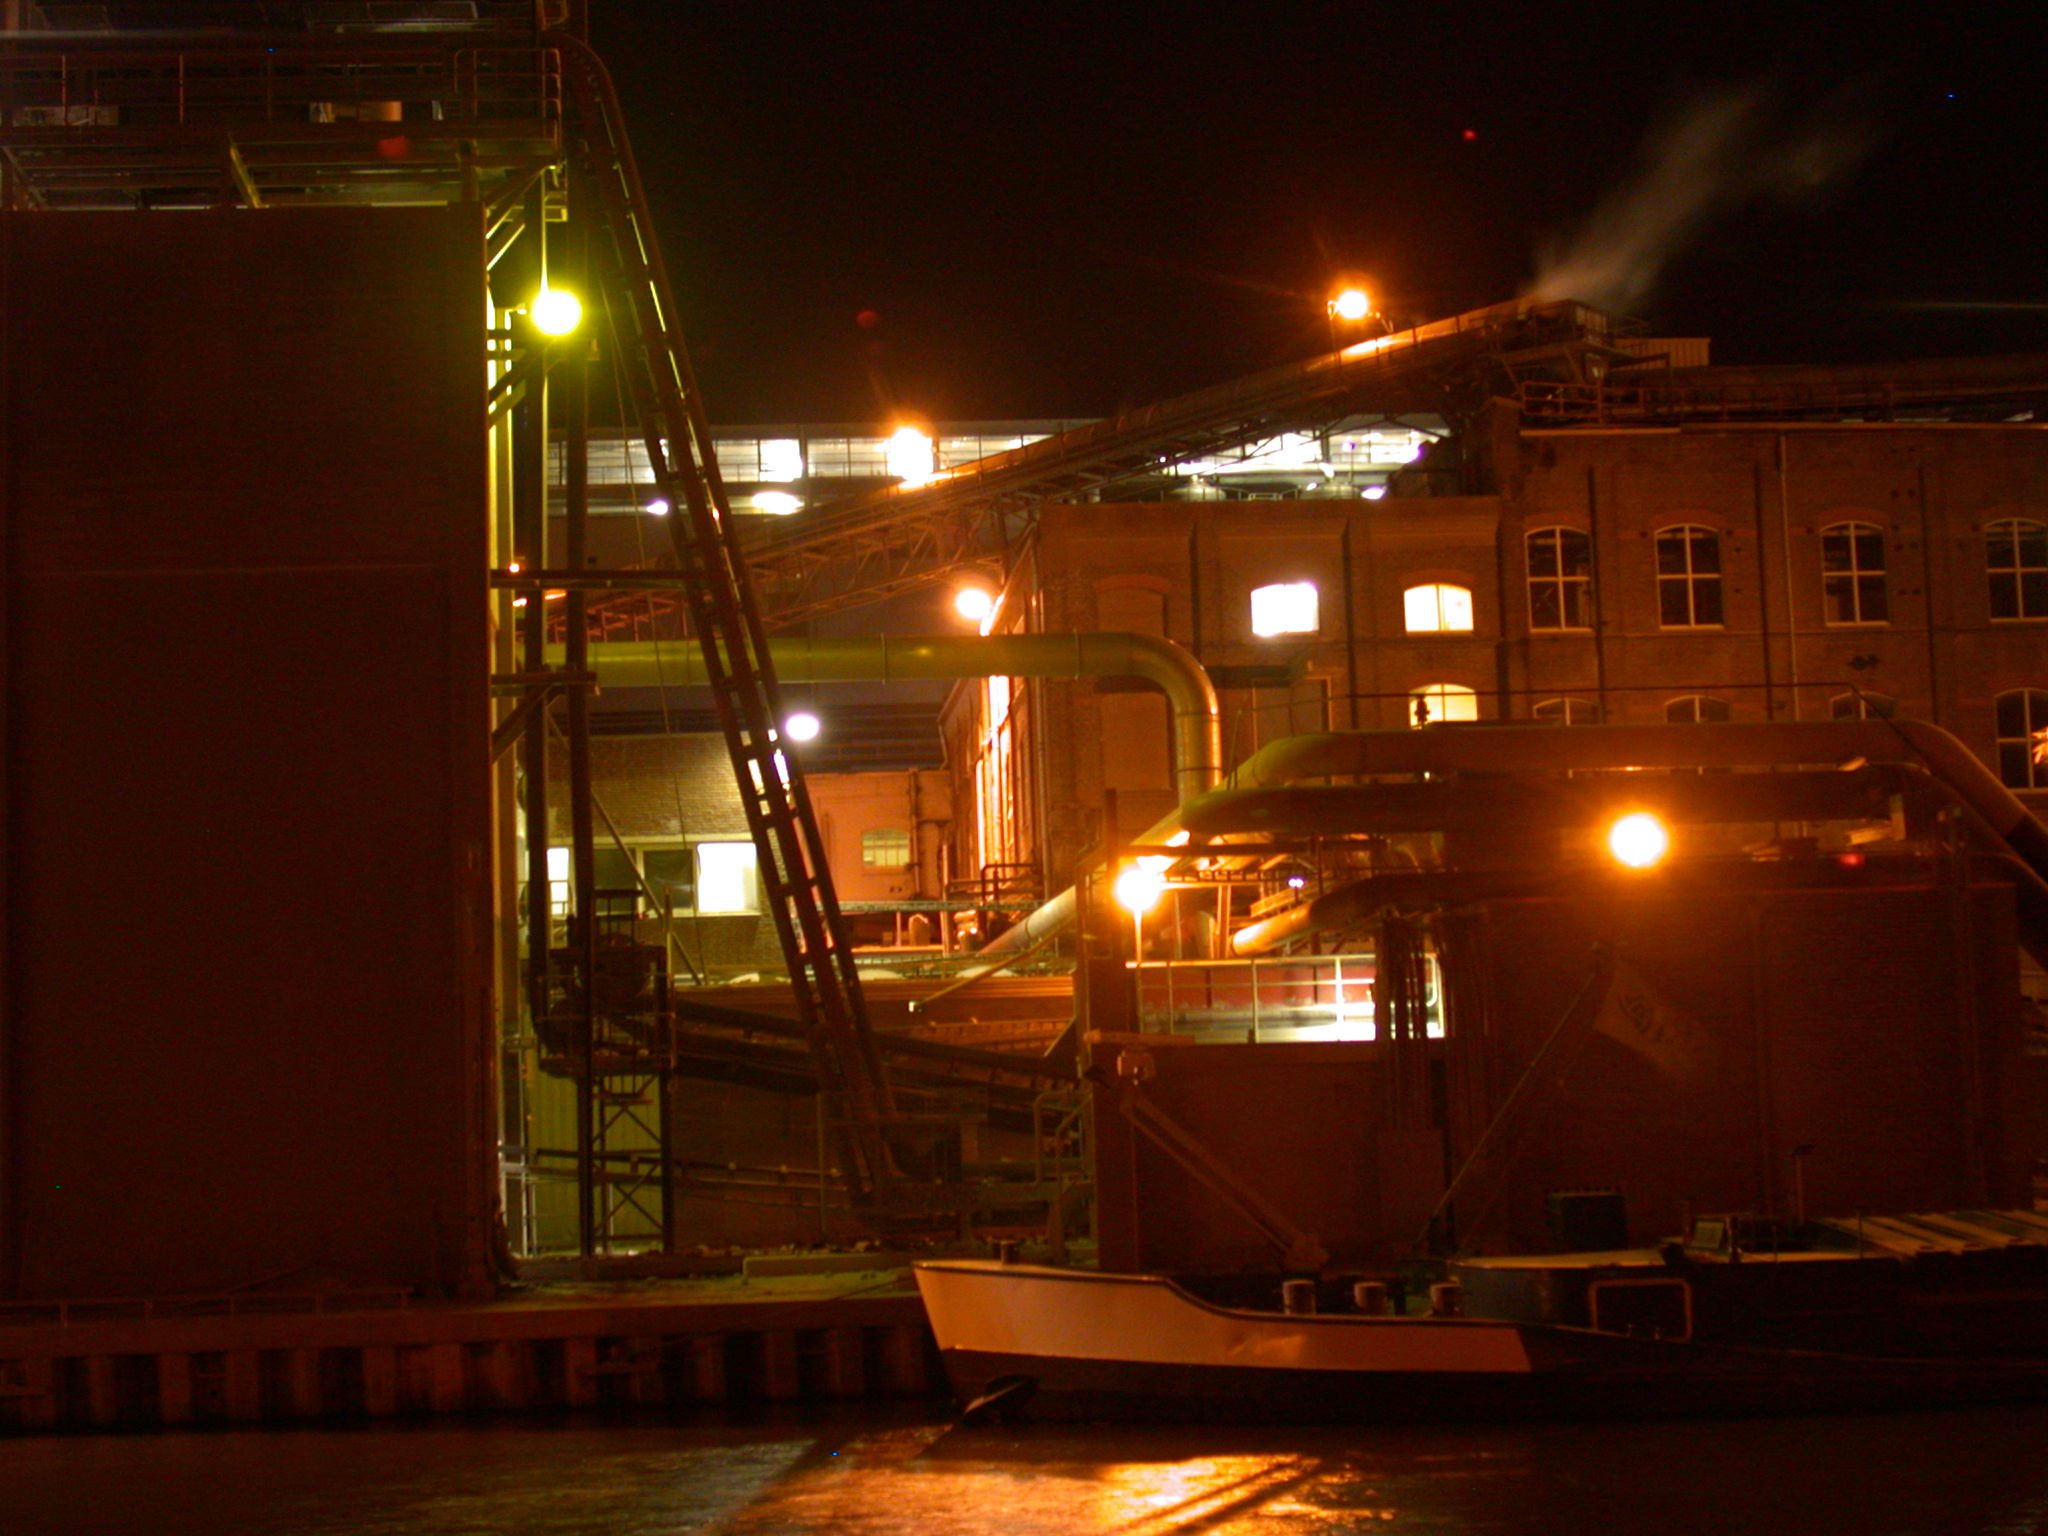 night harbour port ship lights cargo